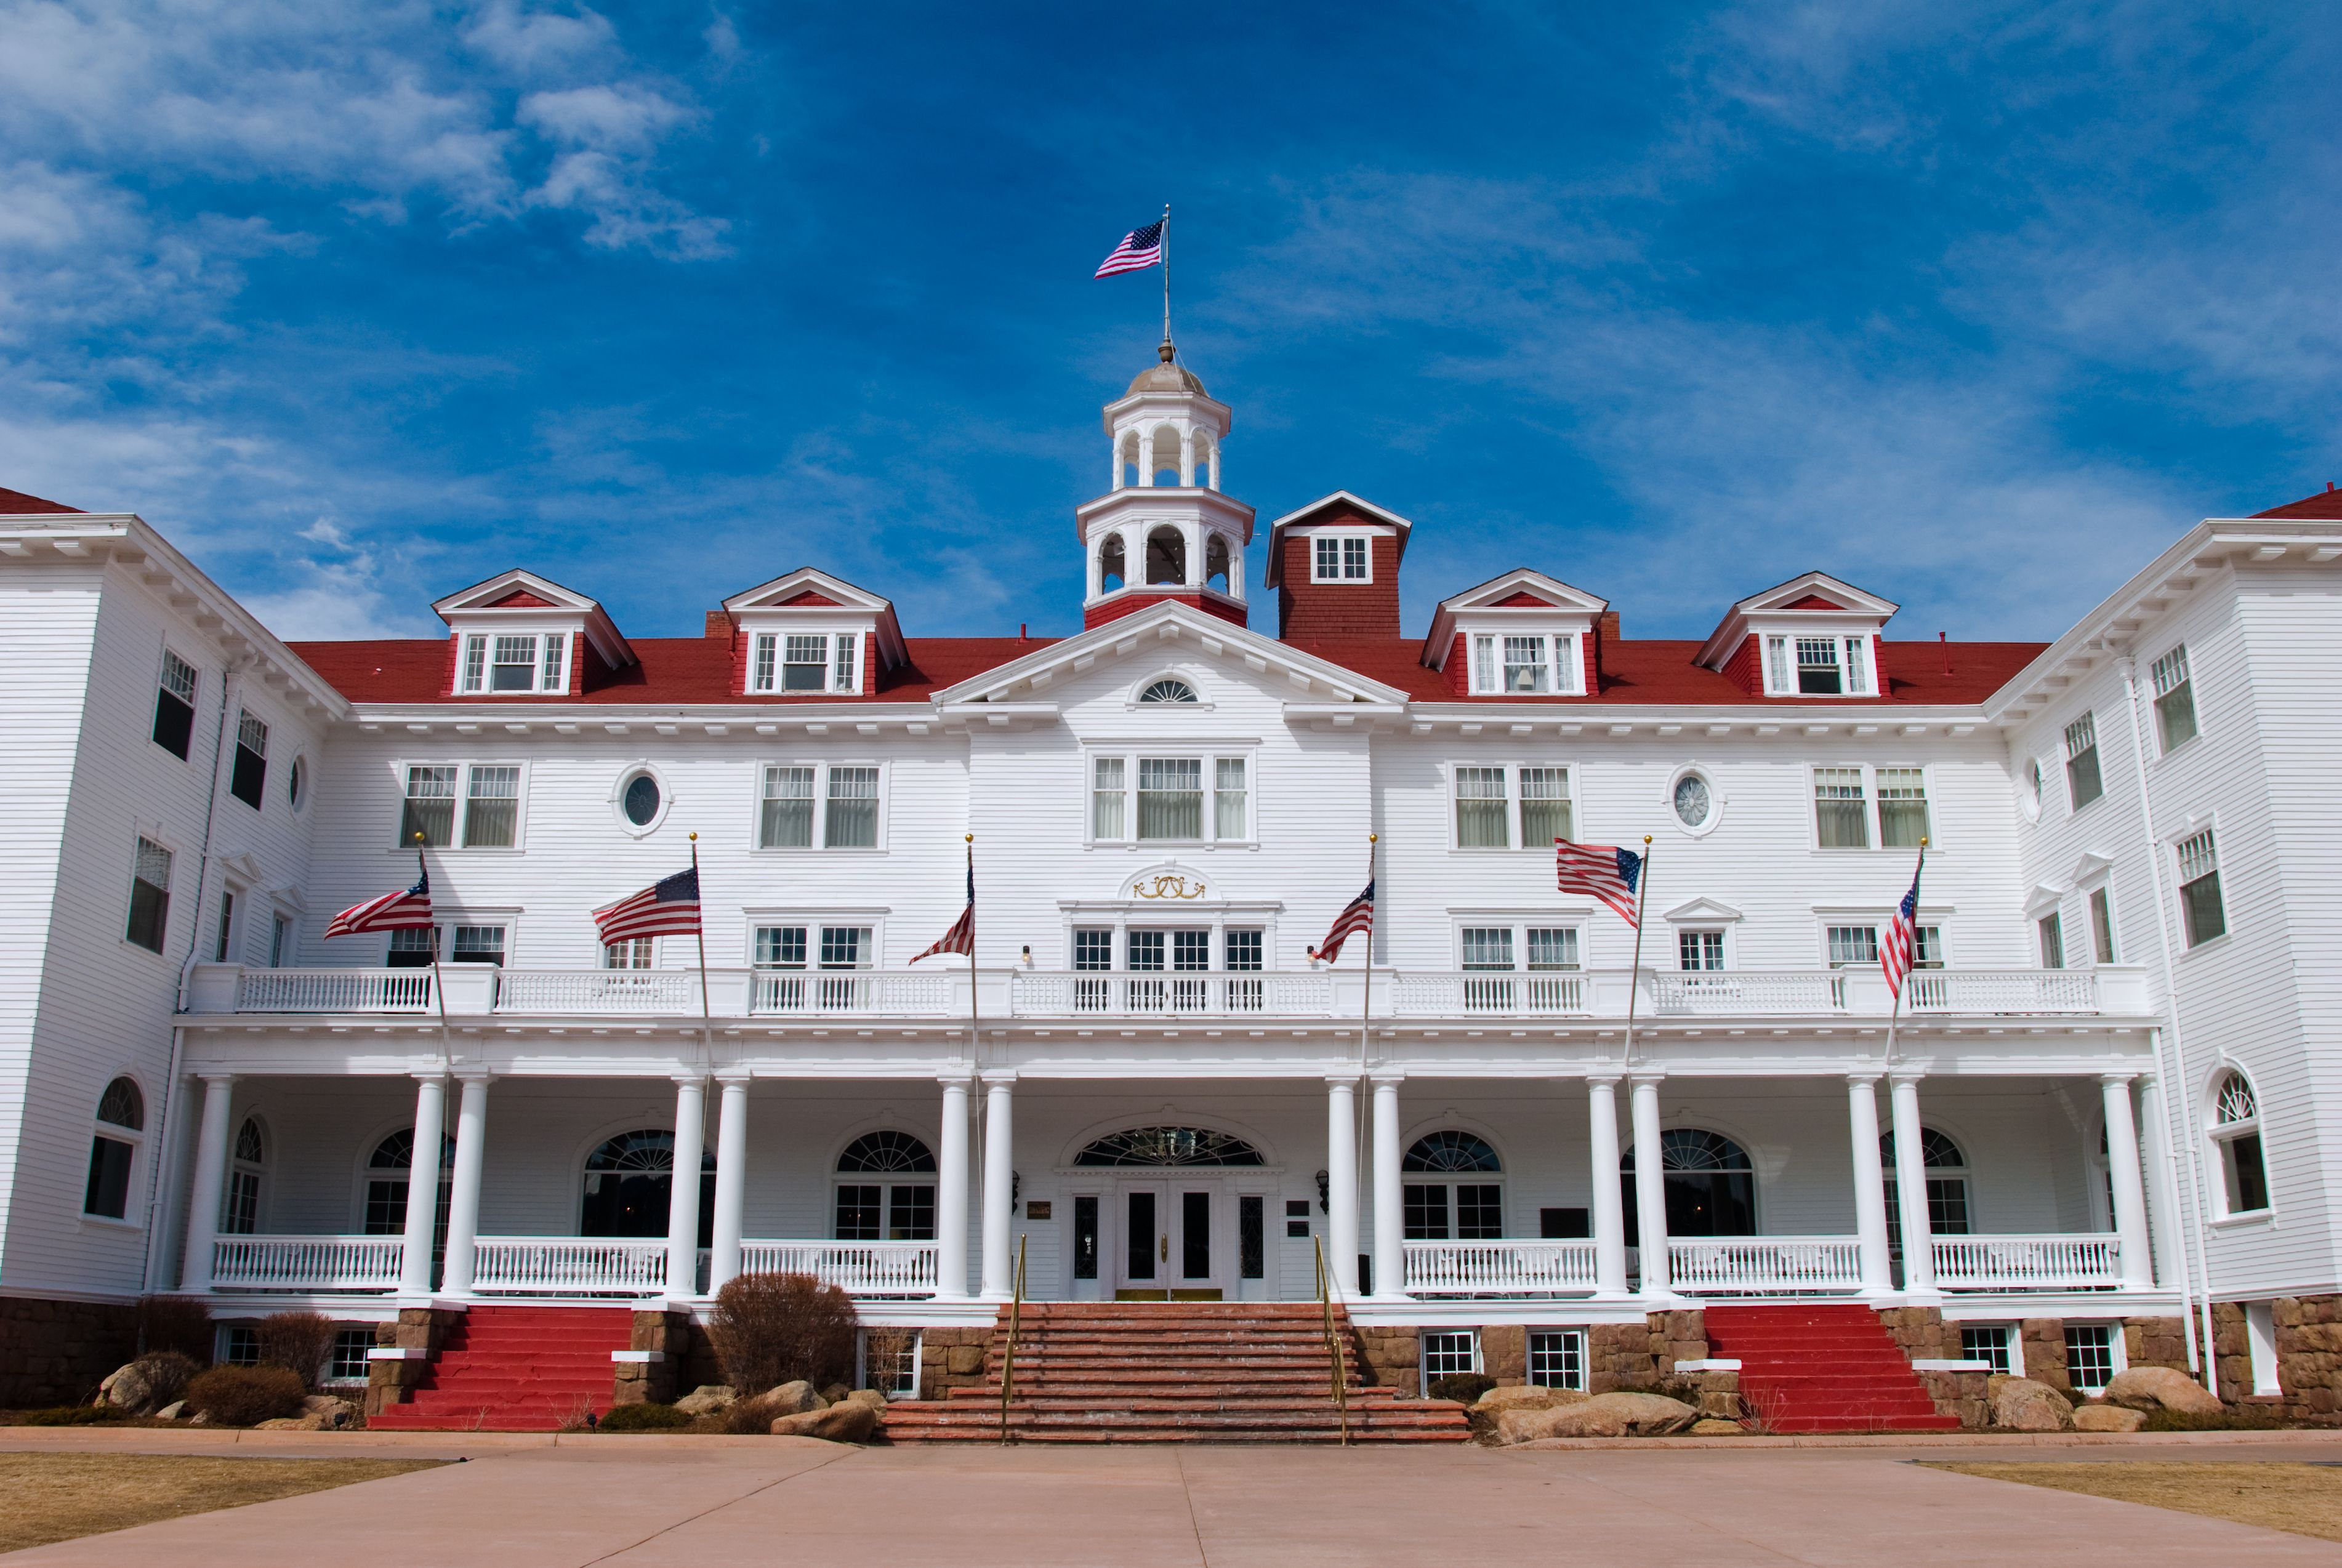 Wide-angle view of the Stanley Hotel in Estes Park, Colorado with a rich blue sky in the background.